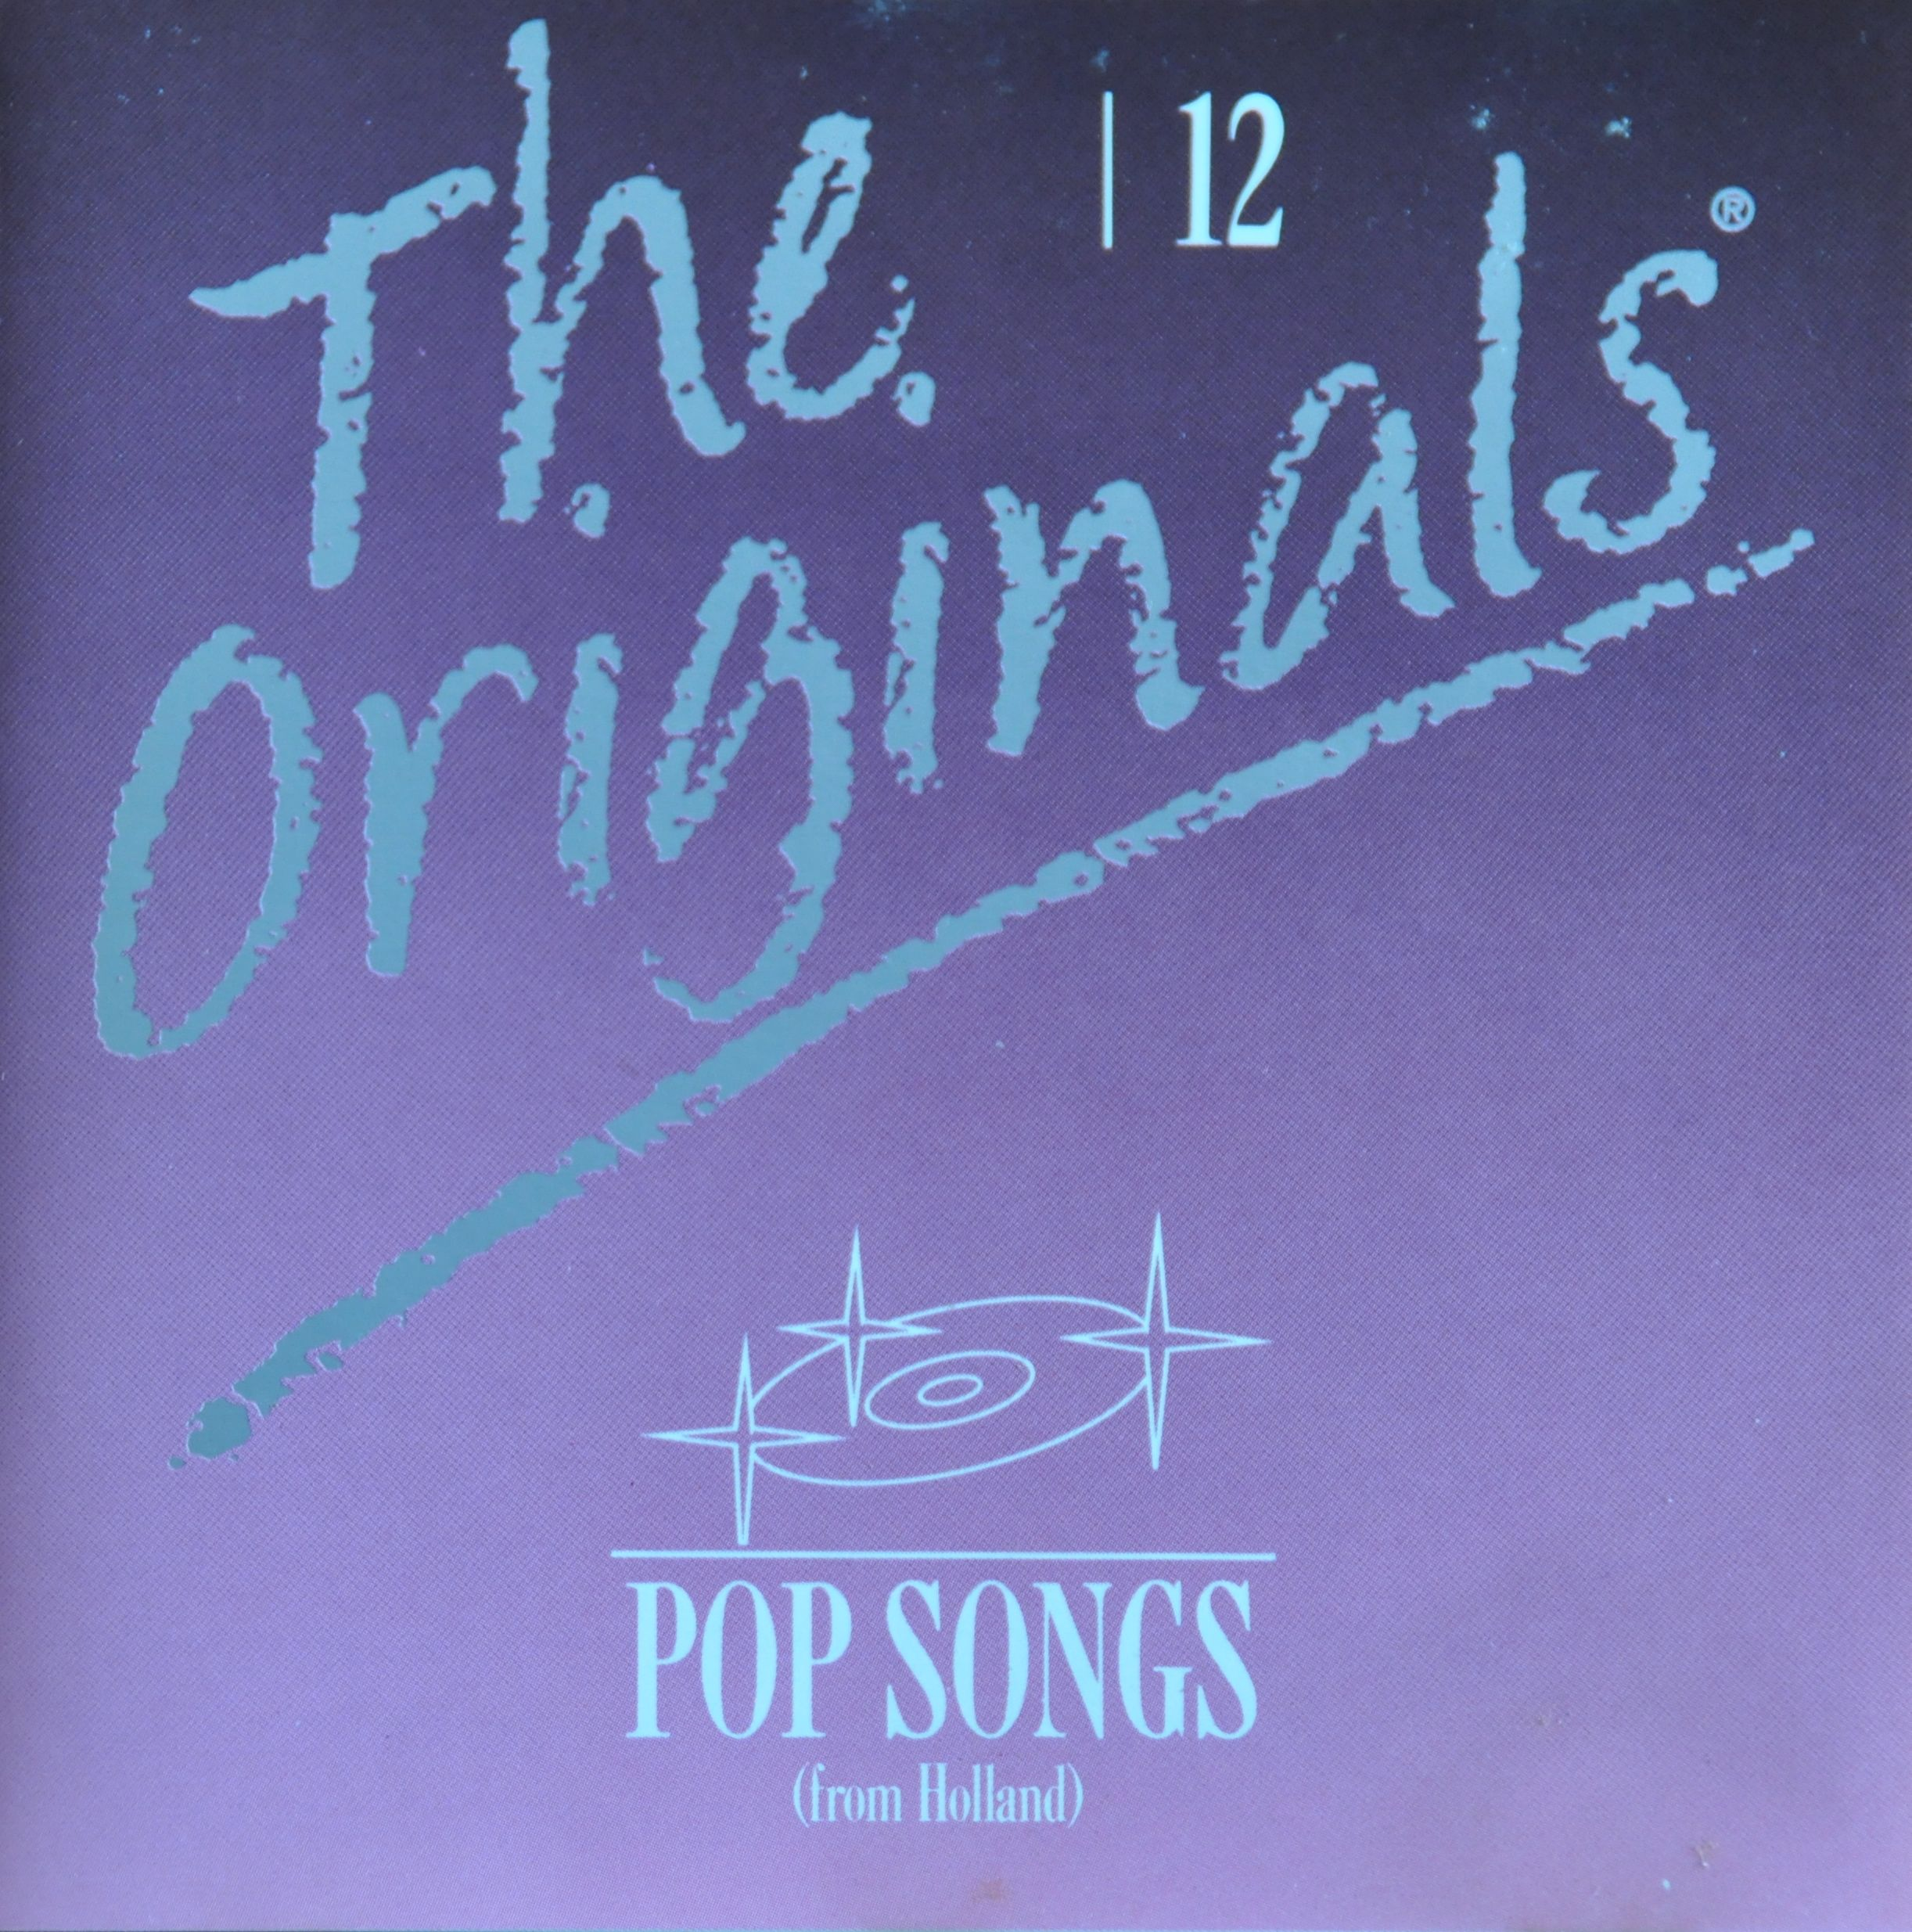 jaquettes2/The-Originals_12_Pop-Songs-from-Holland.jpg